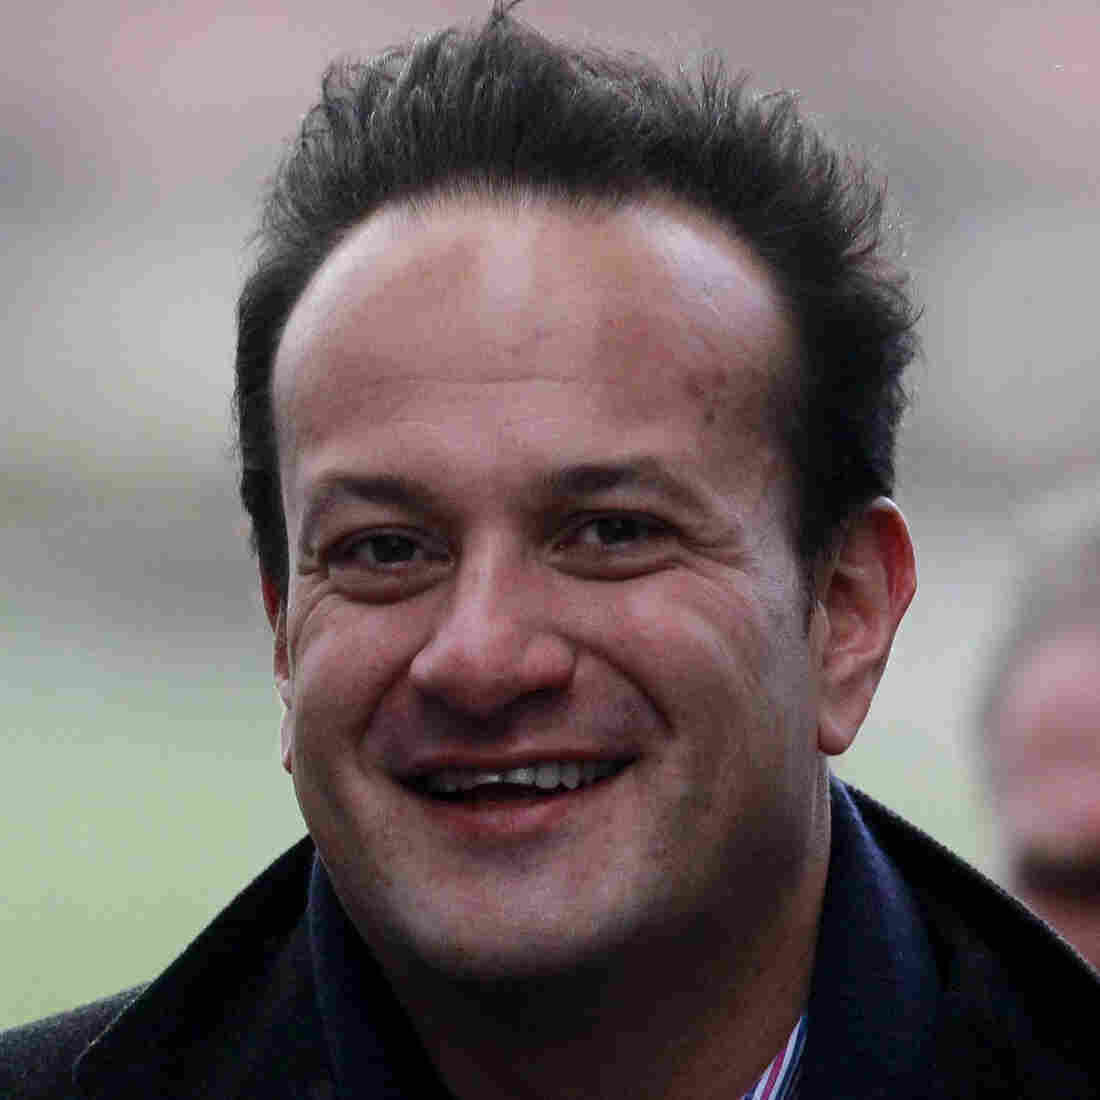 Ireland's Health Minister Leo Varadkar, 36, who has publicly come out as gay.